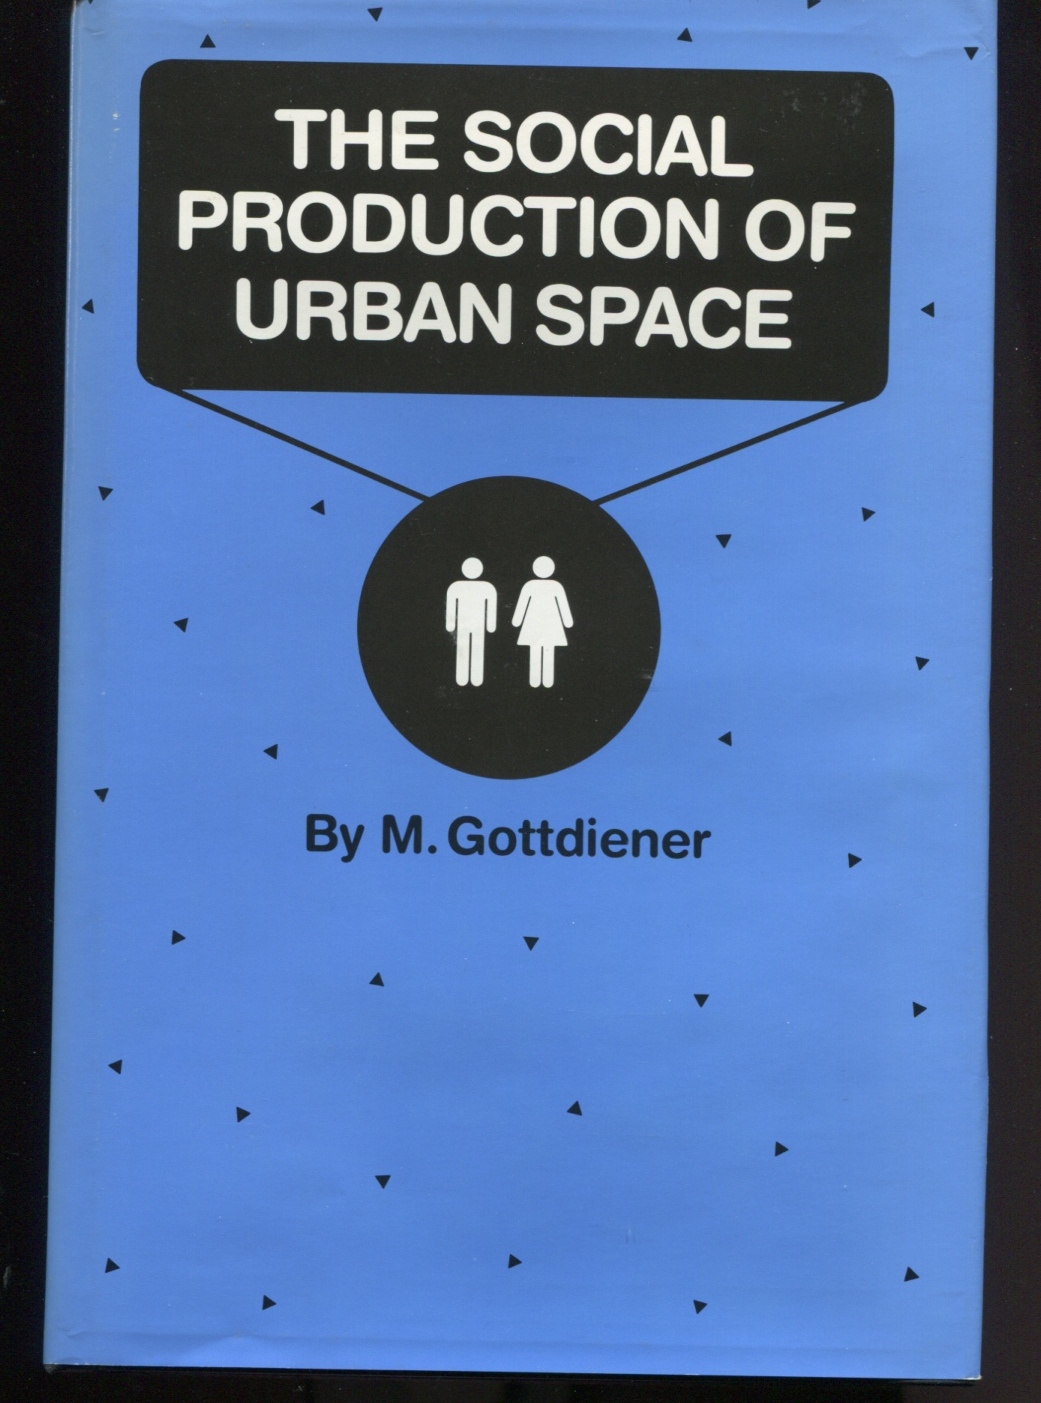 The Social Production of Urban Space.